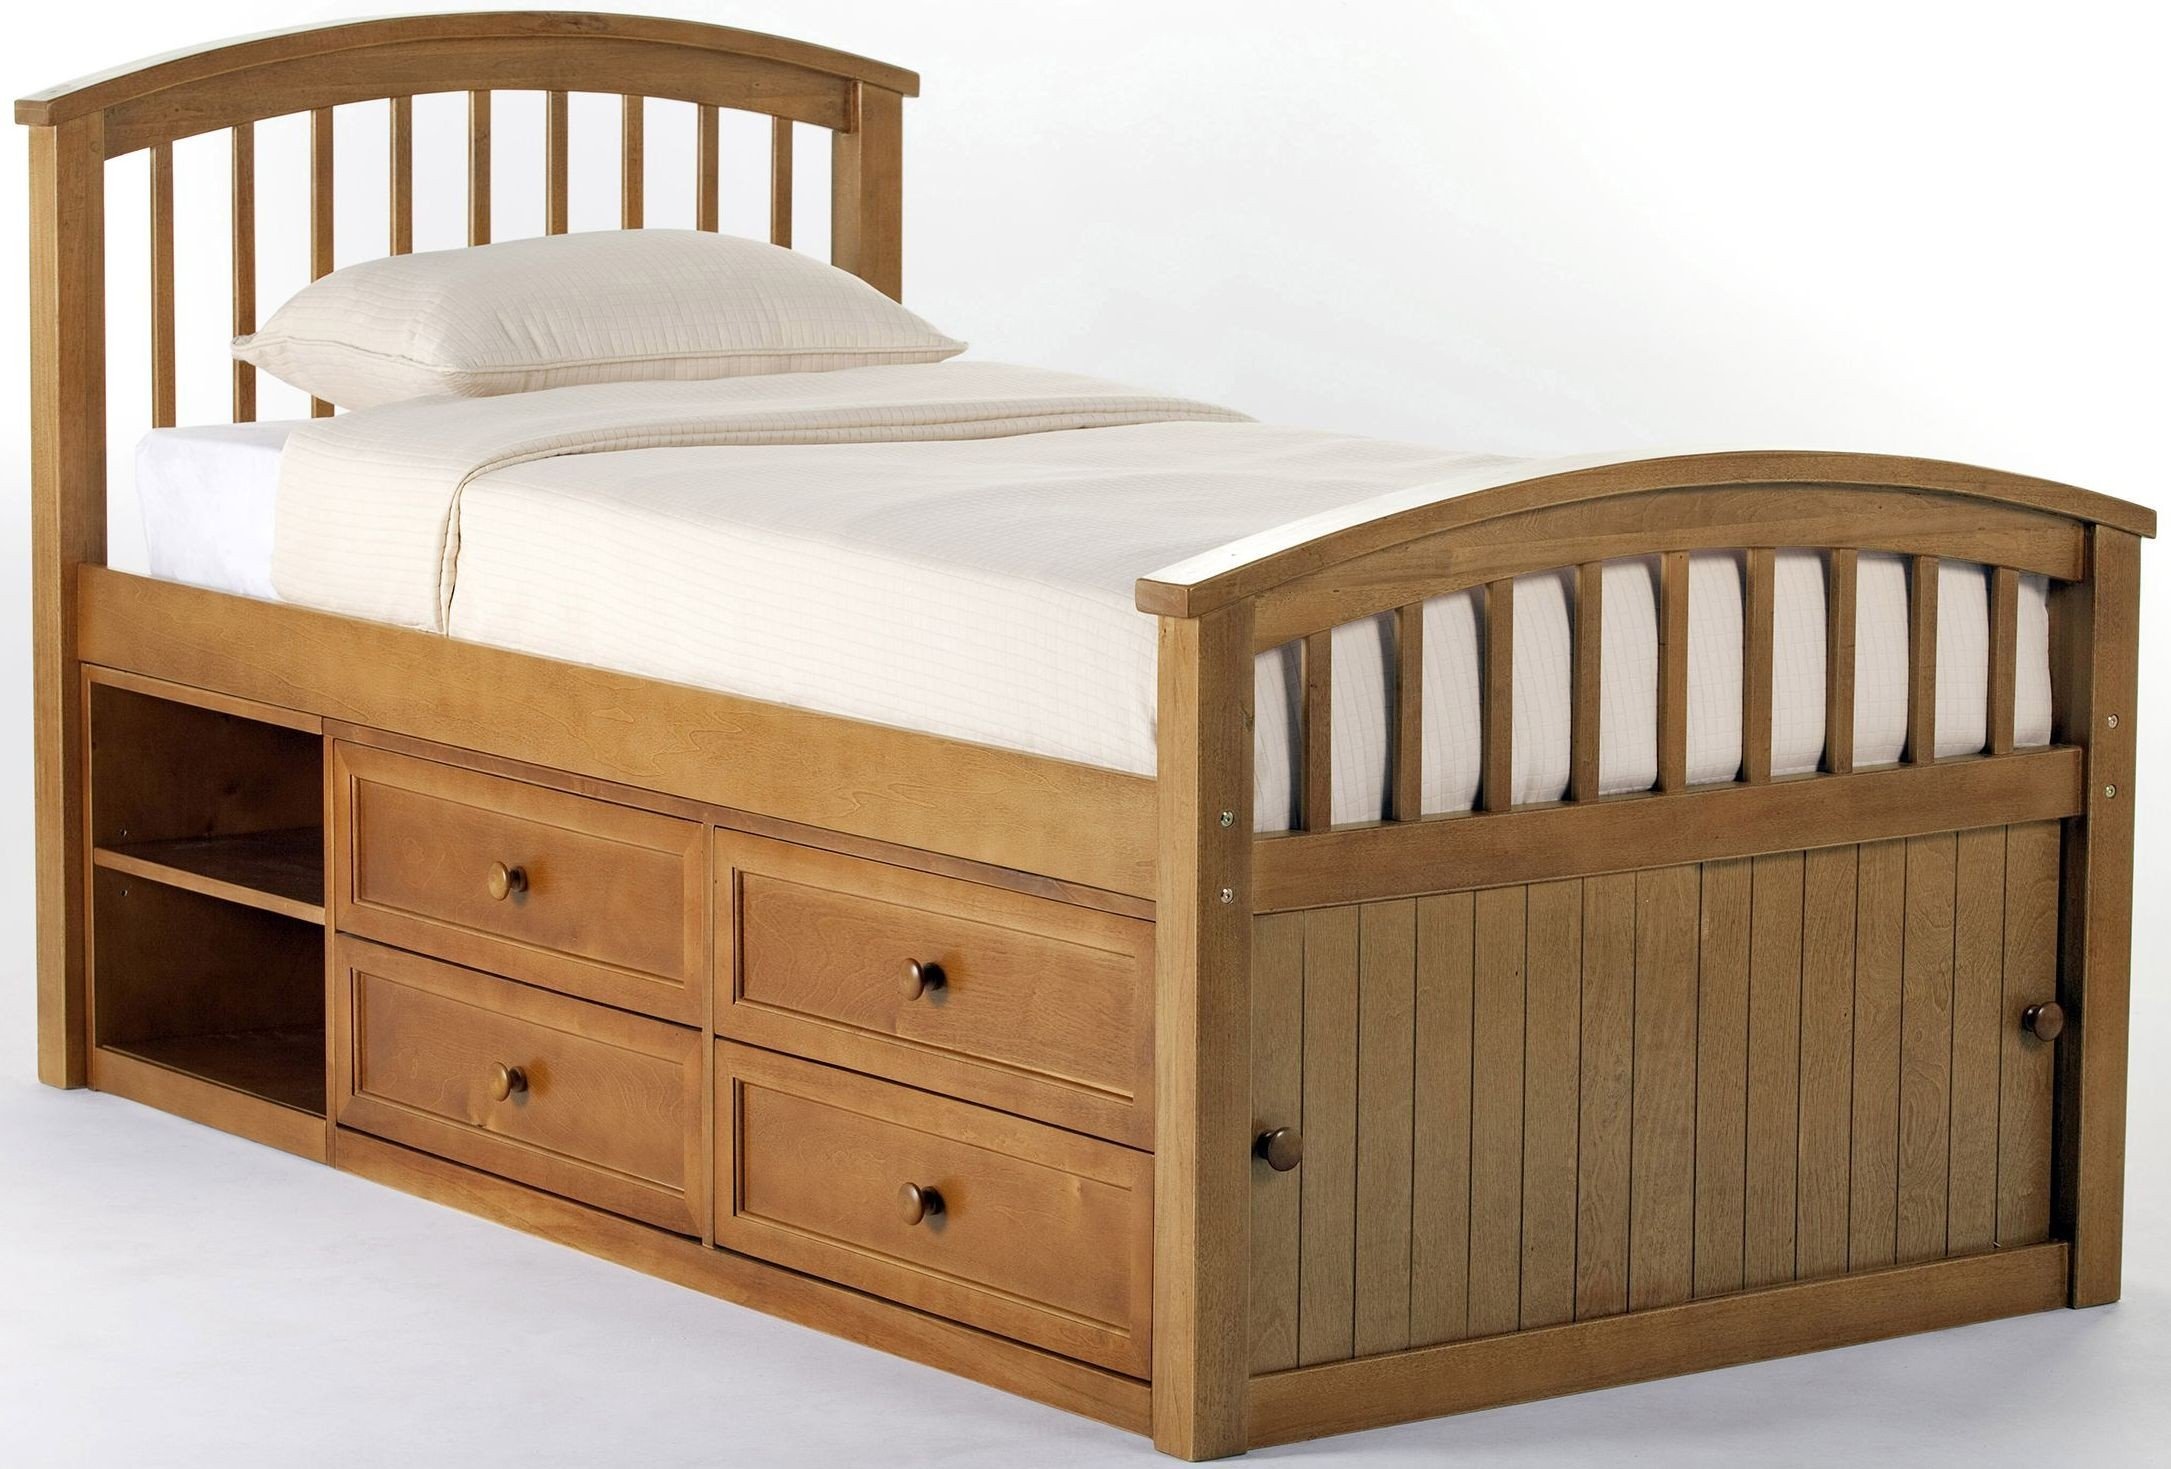 School house pecan captain twin panel bed from ne kids for Pecan house